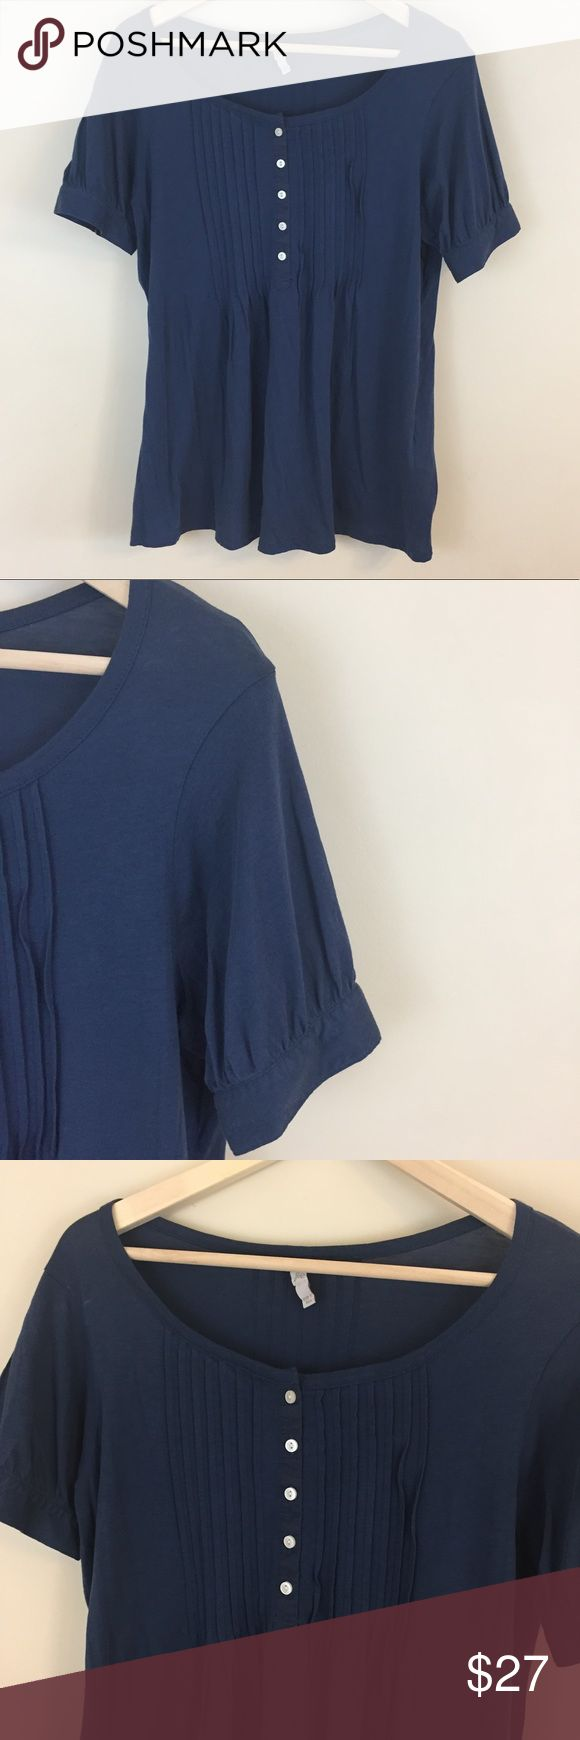 "Joie Pima Cotton Blue Short Sleeve Top Size Medium Joie knit top size small.  Good condition.  Short sleeves with button.  Button and pleated front. Pima cotton.  MEASUREMENTS Length 27"" in front, 29"" in back. Armpit to armpit 20"" Joie Tops"